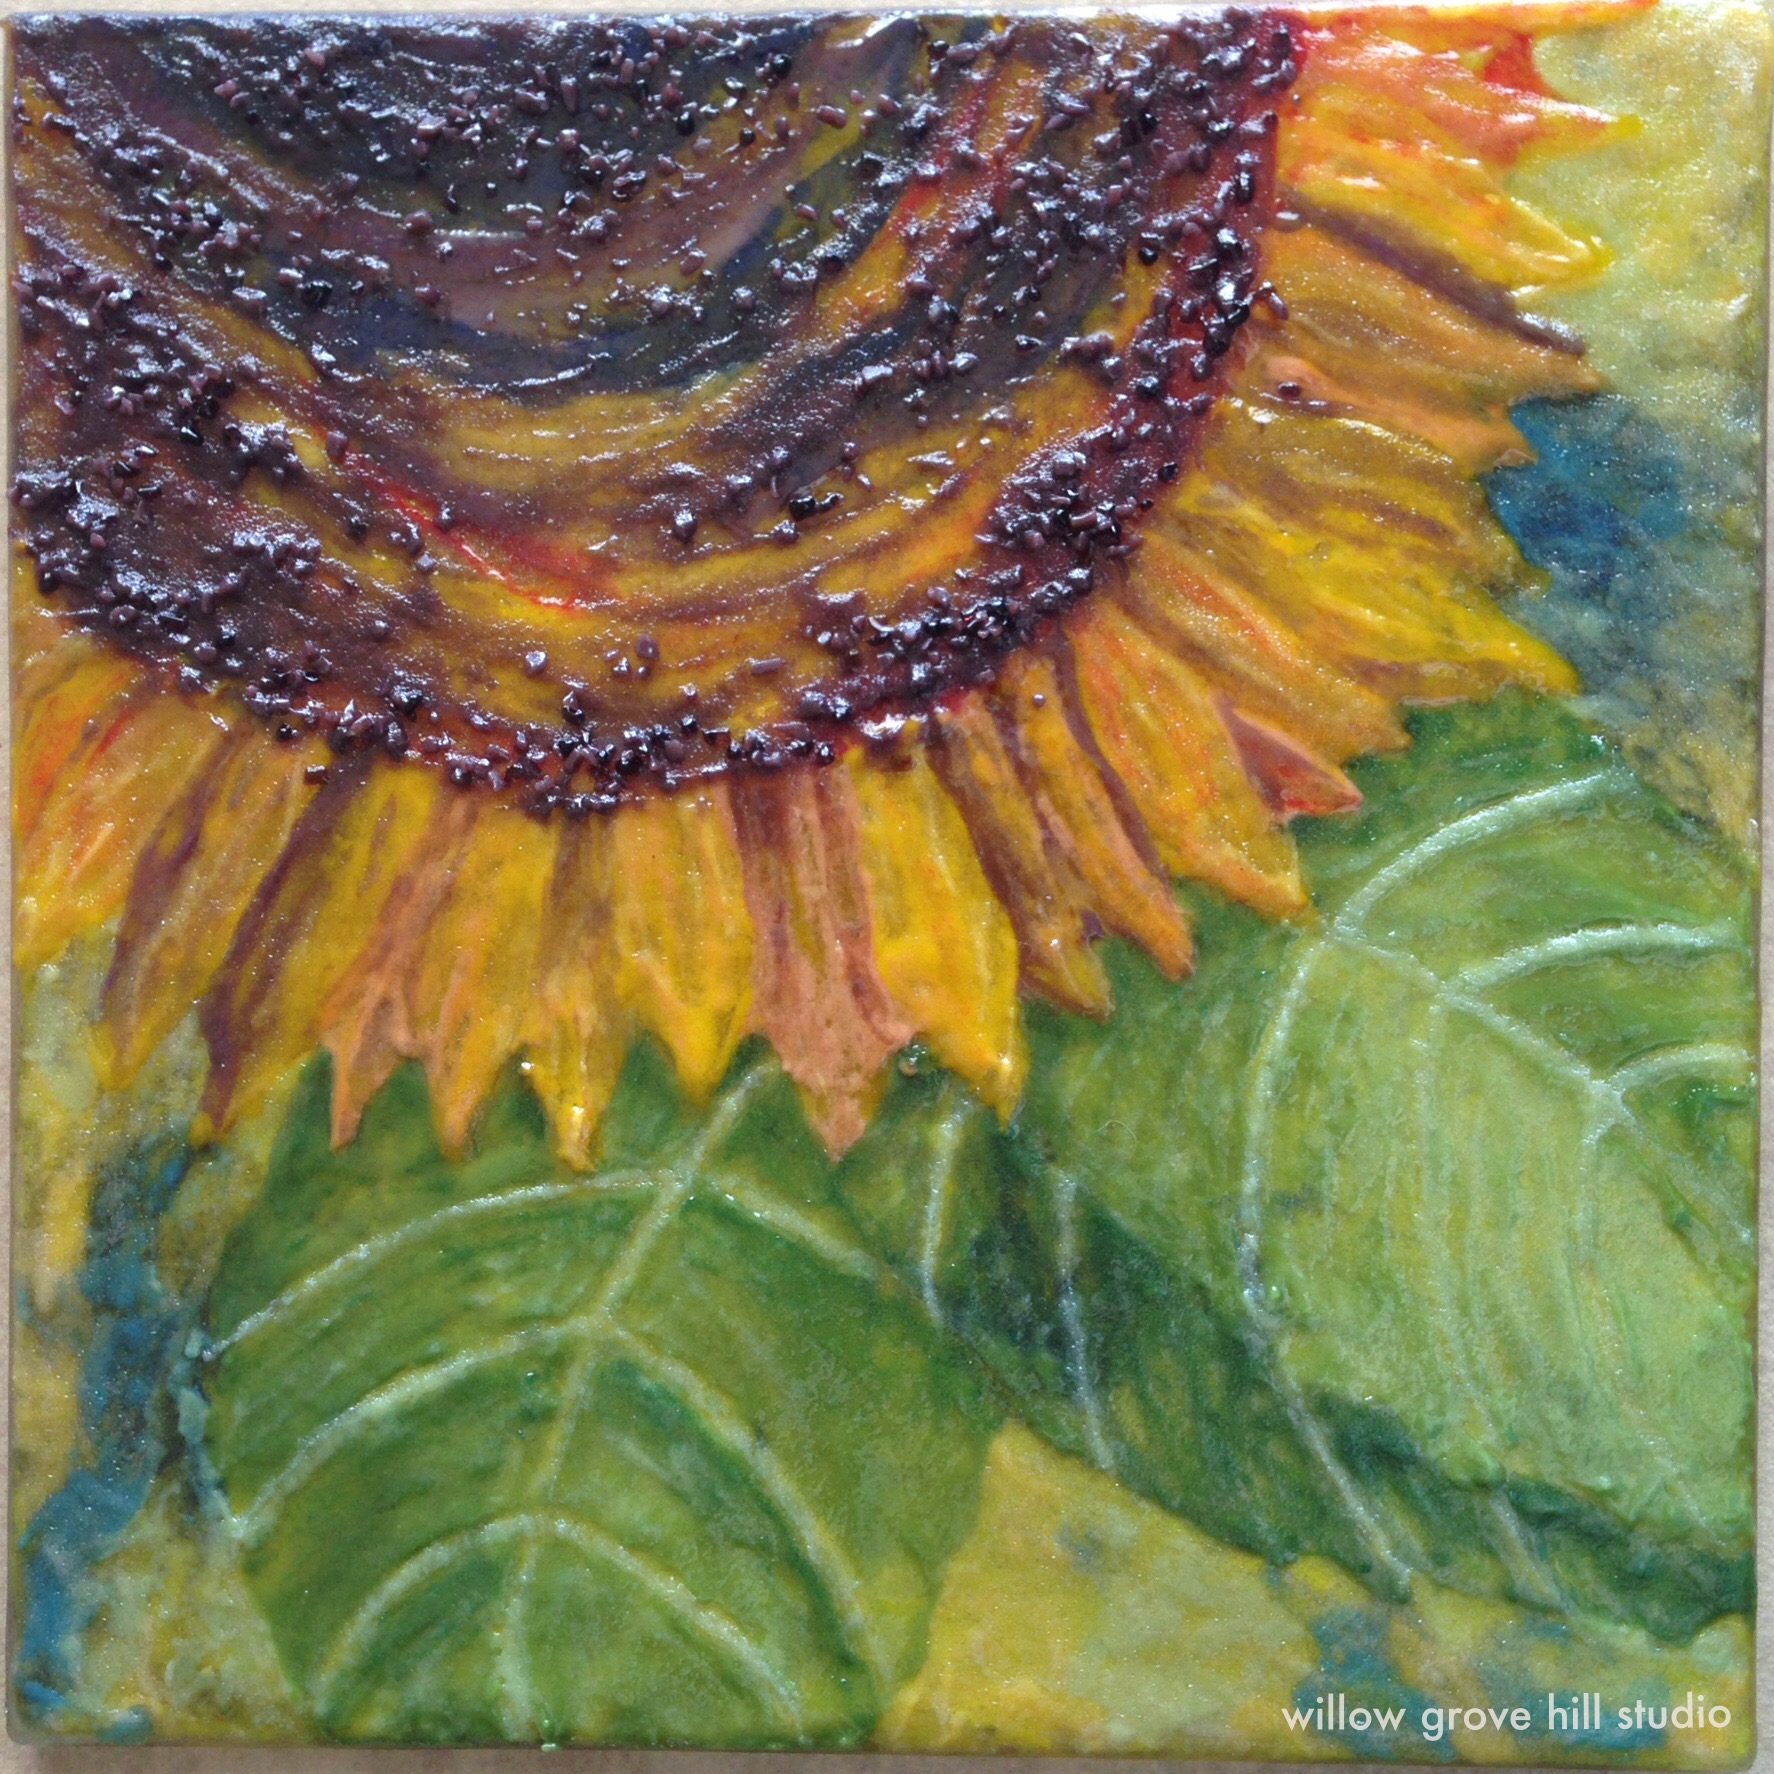 glass art by Willow Grove Hill Studio